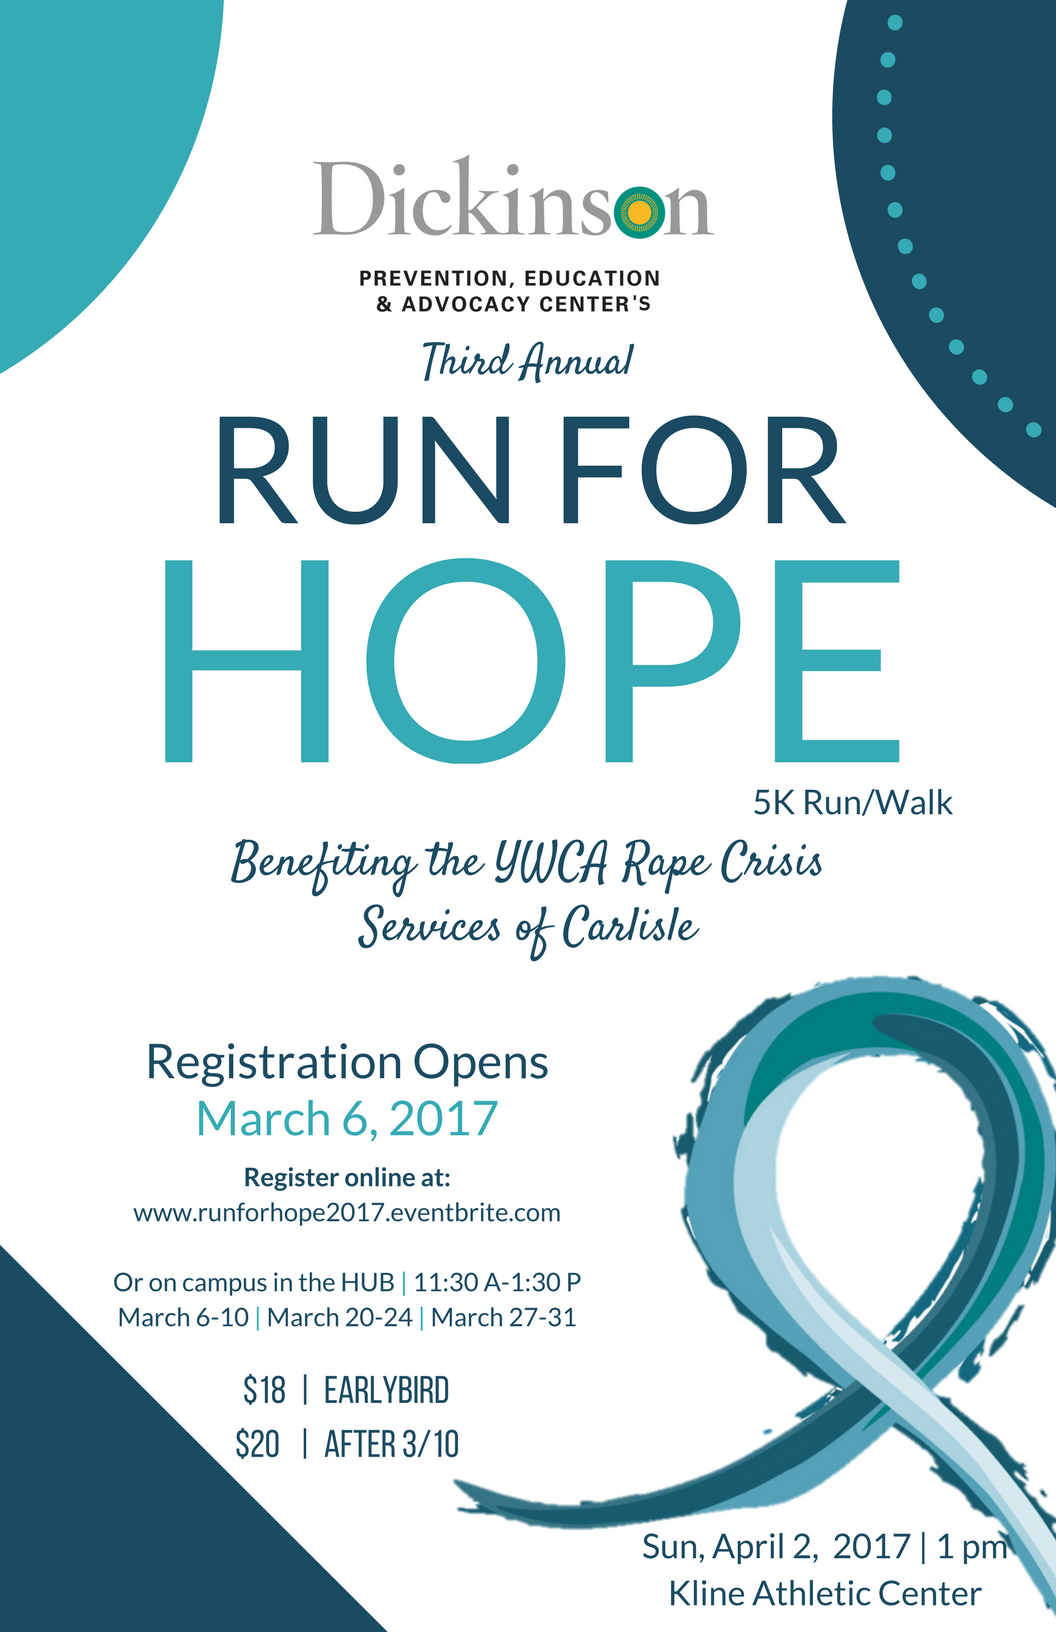 poster with details for run for hope event